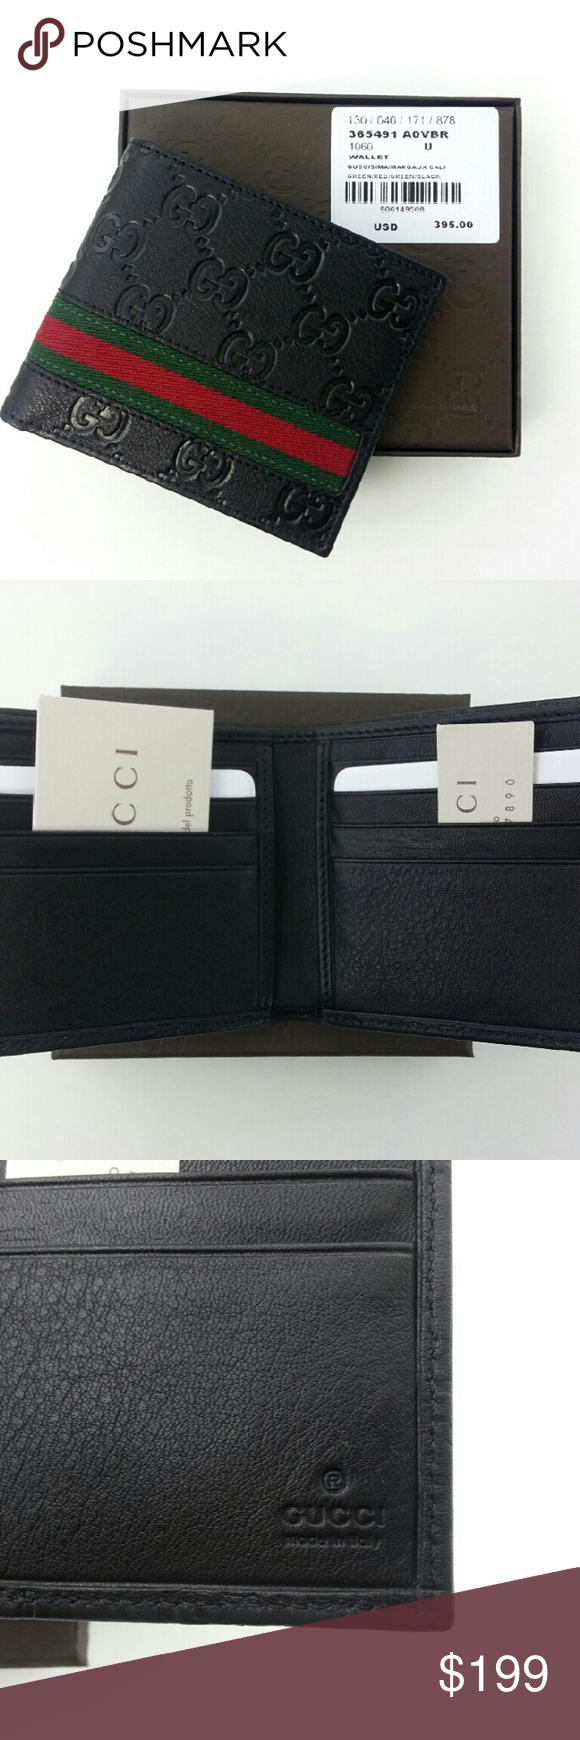 5e20d741fe1 GUCCI original men Black Web strip bi fold wallet GUCCI original men s  Black leather Web Strip